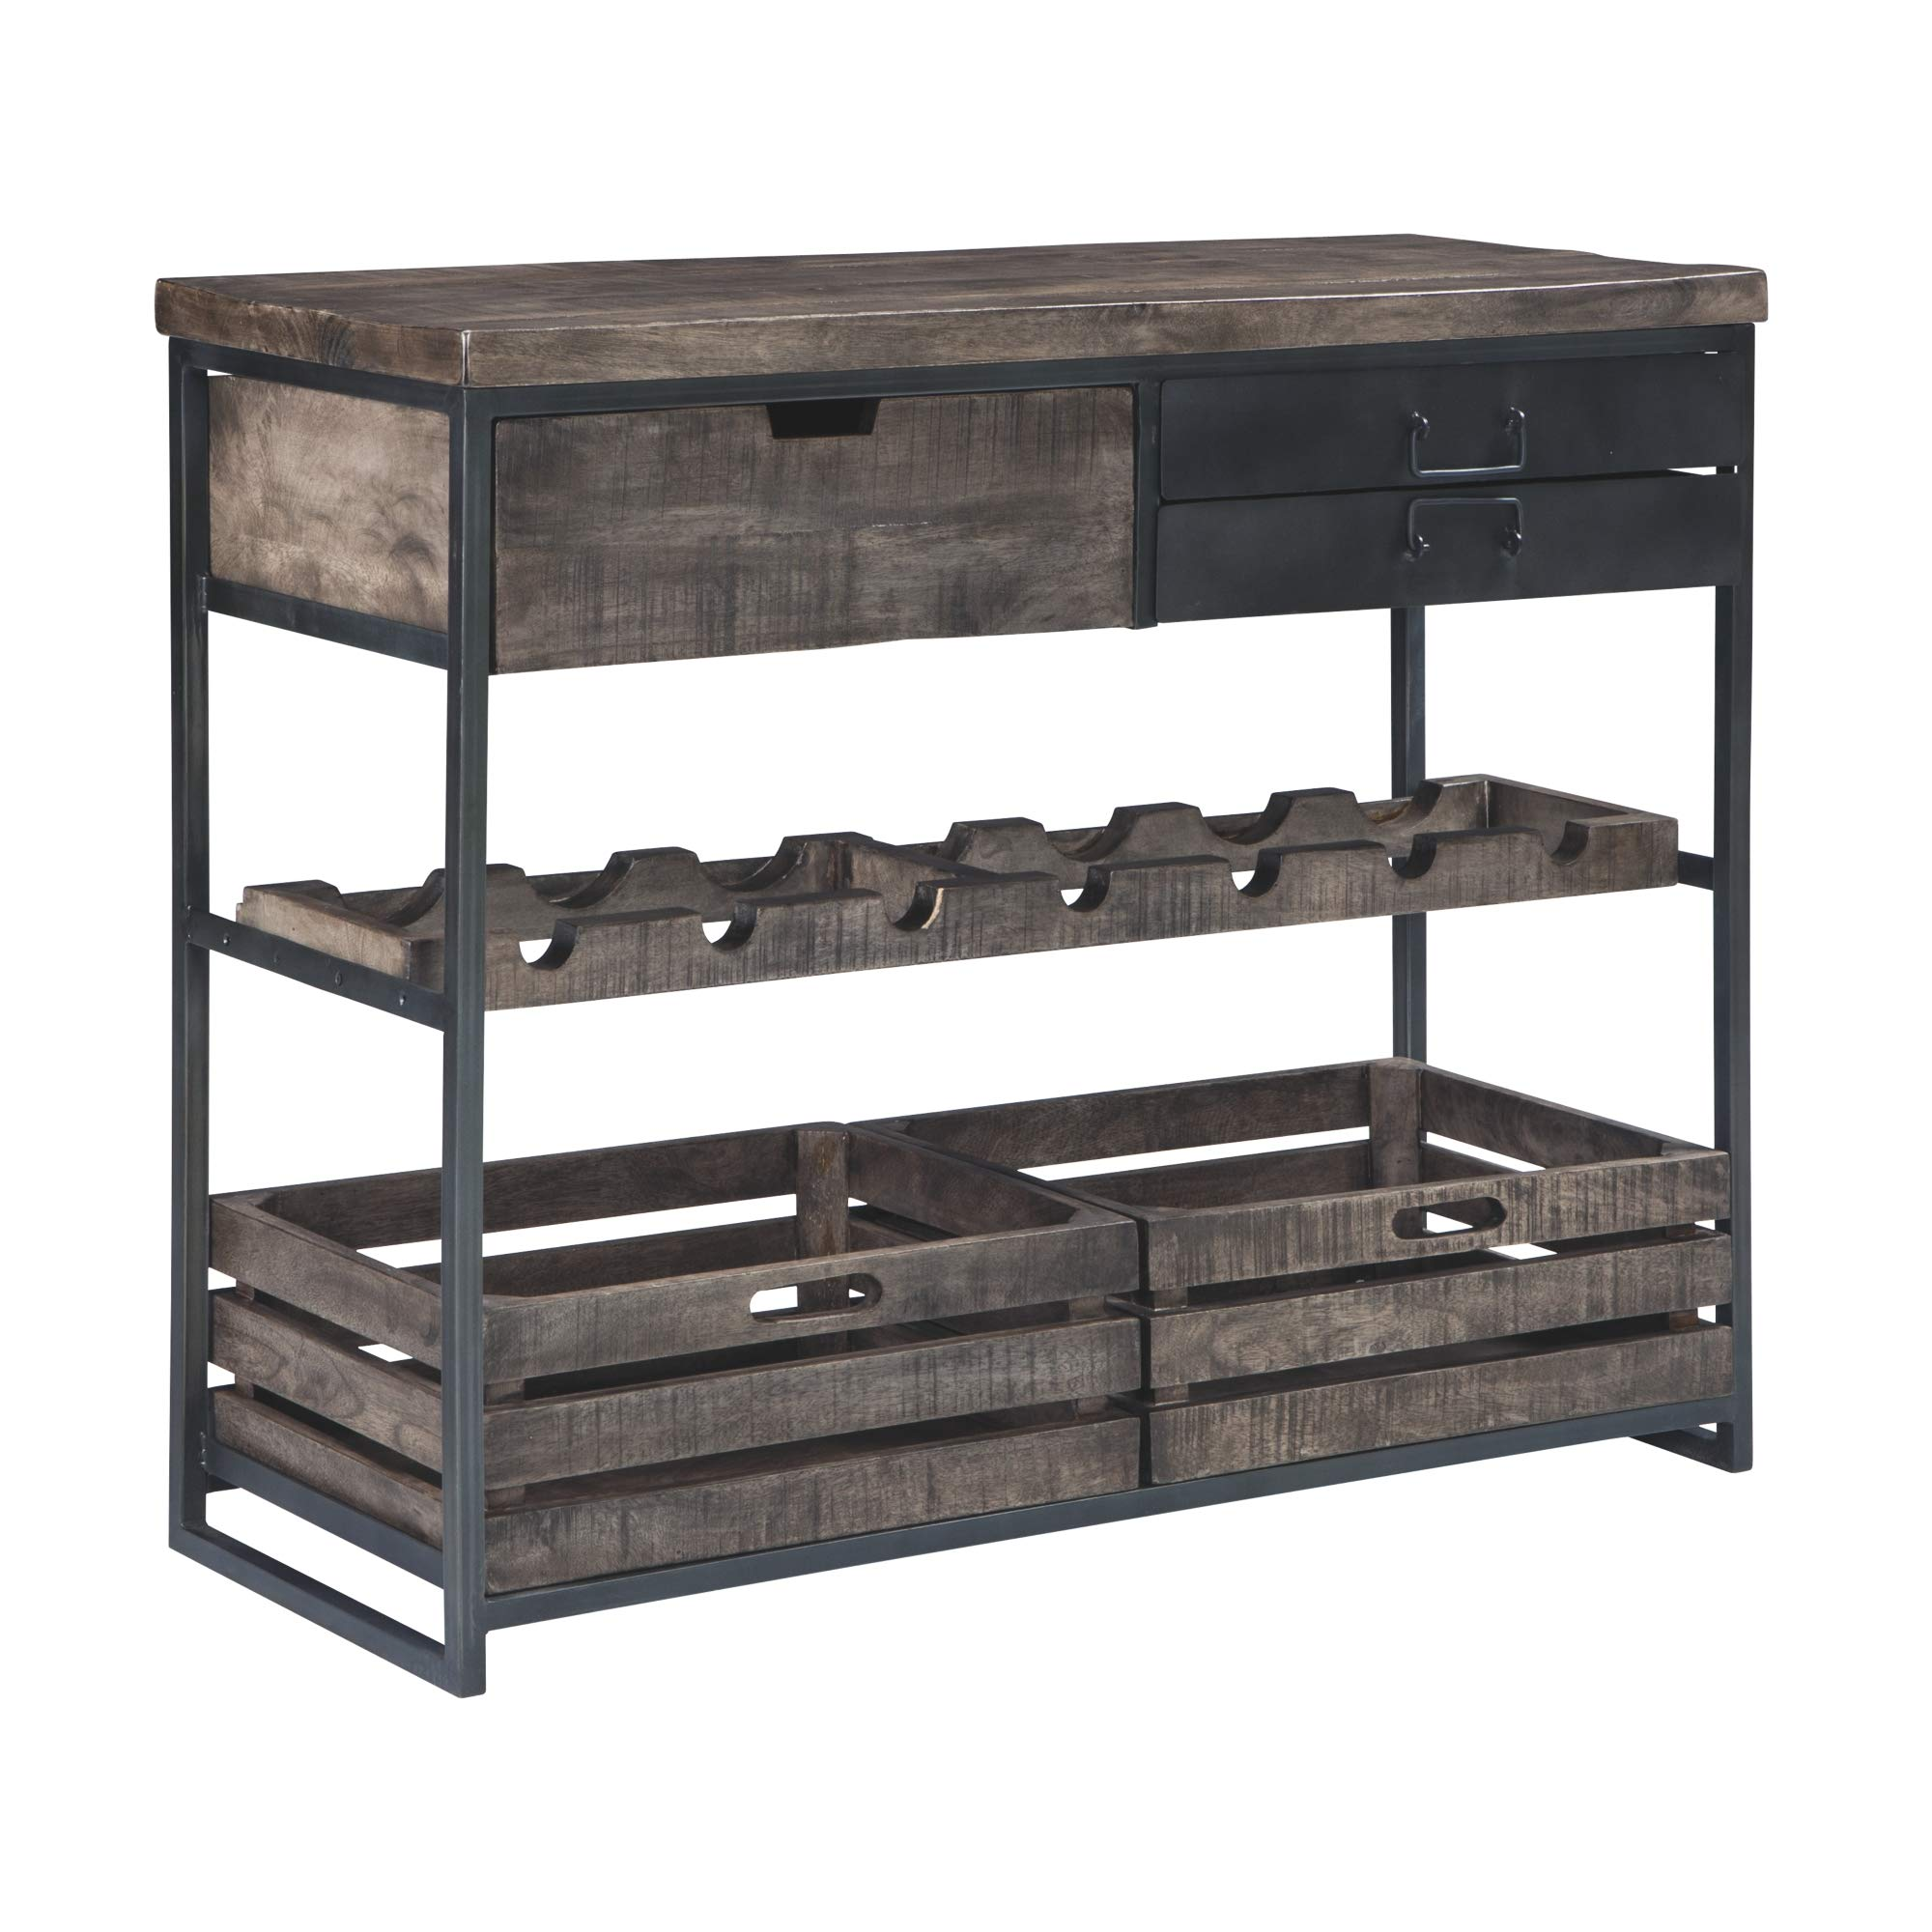 CDM product Ashley Furniture Signature Design - Ponder Ridge Accent Cabinet & Wine Rack - Solid Wood in Black/Gray Wash - Gunmetal Finished Metal - 3 Drawers/2 Removeable Bins big image